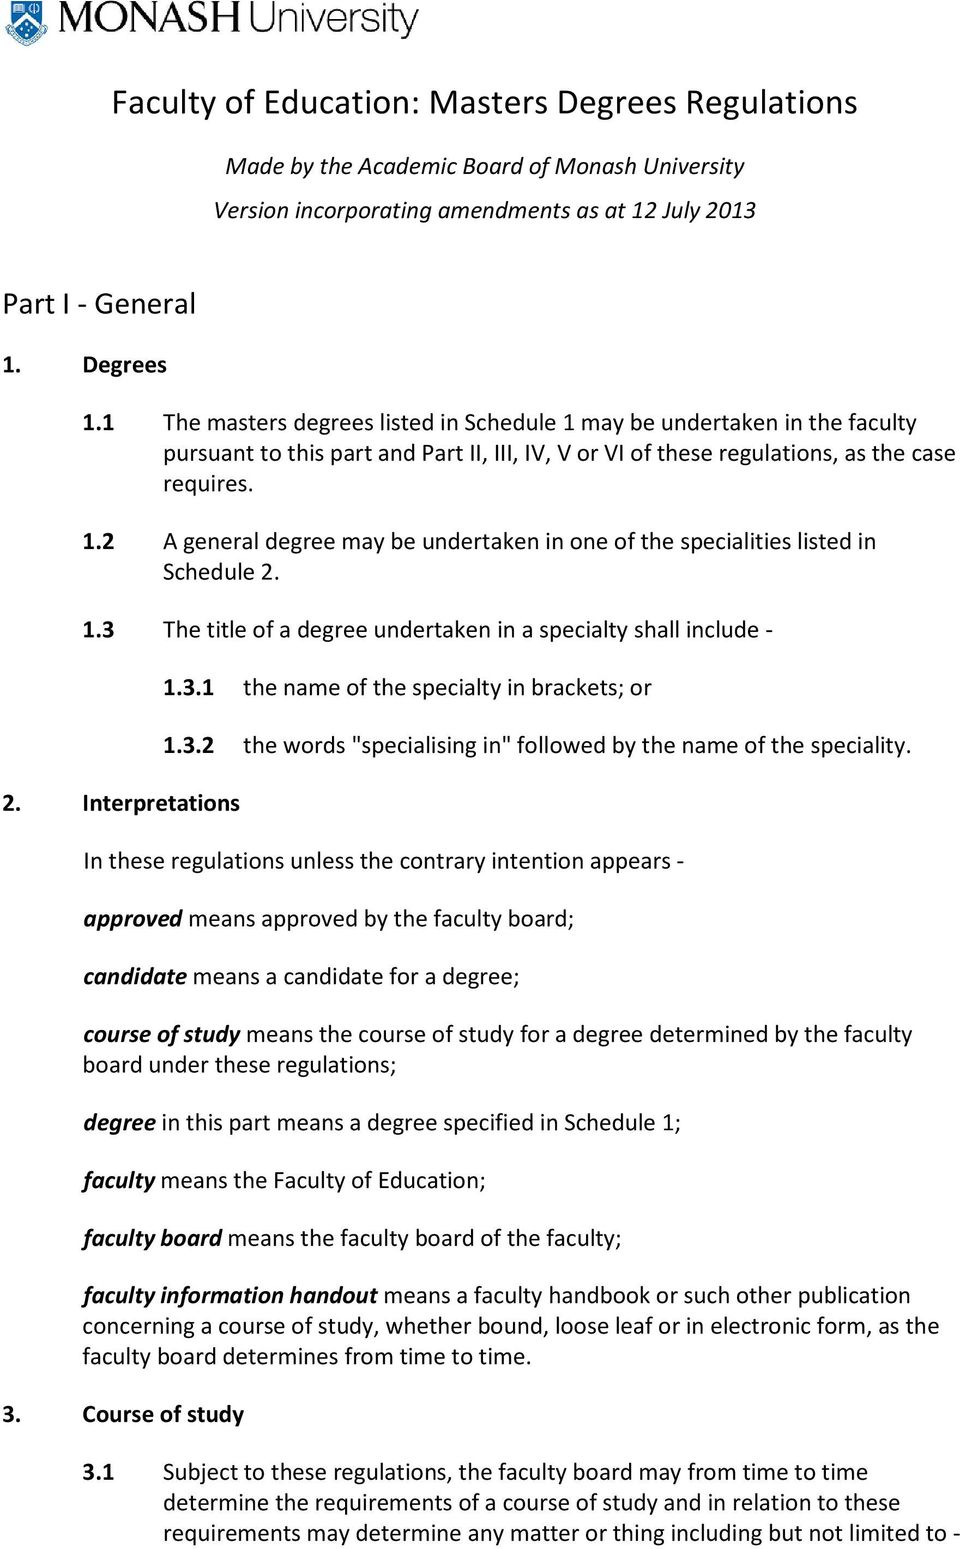 "1.3 The title of a degree undertaken in a specialty shall include - 2. Interpretations 1.3.1 the name of the specialty in brackets; or 1.3.2 the words ""specialising in"" followed by the name of the speciality."